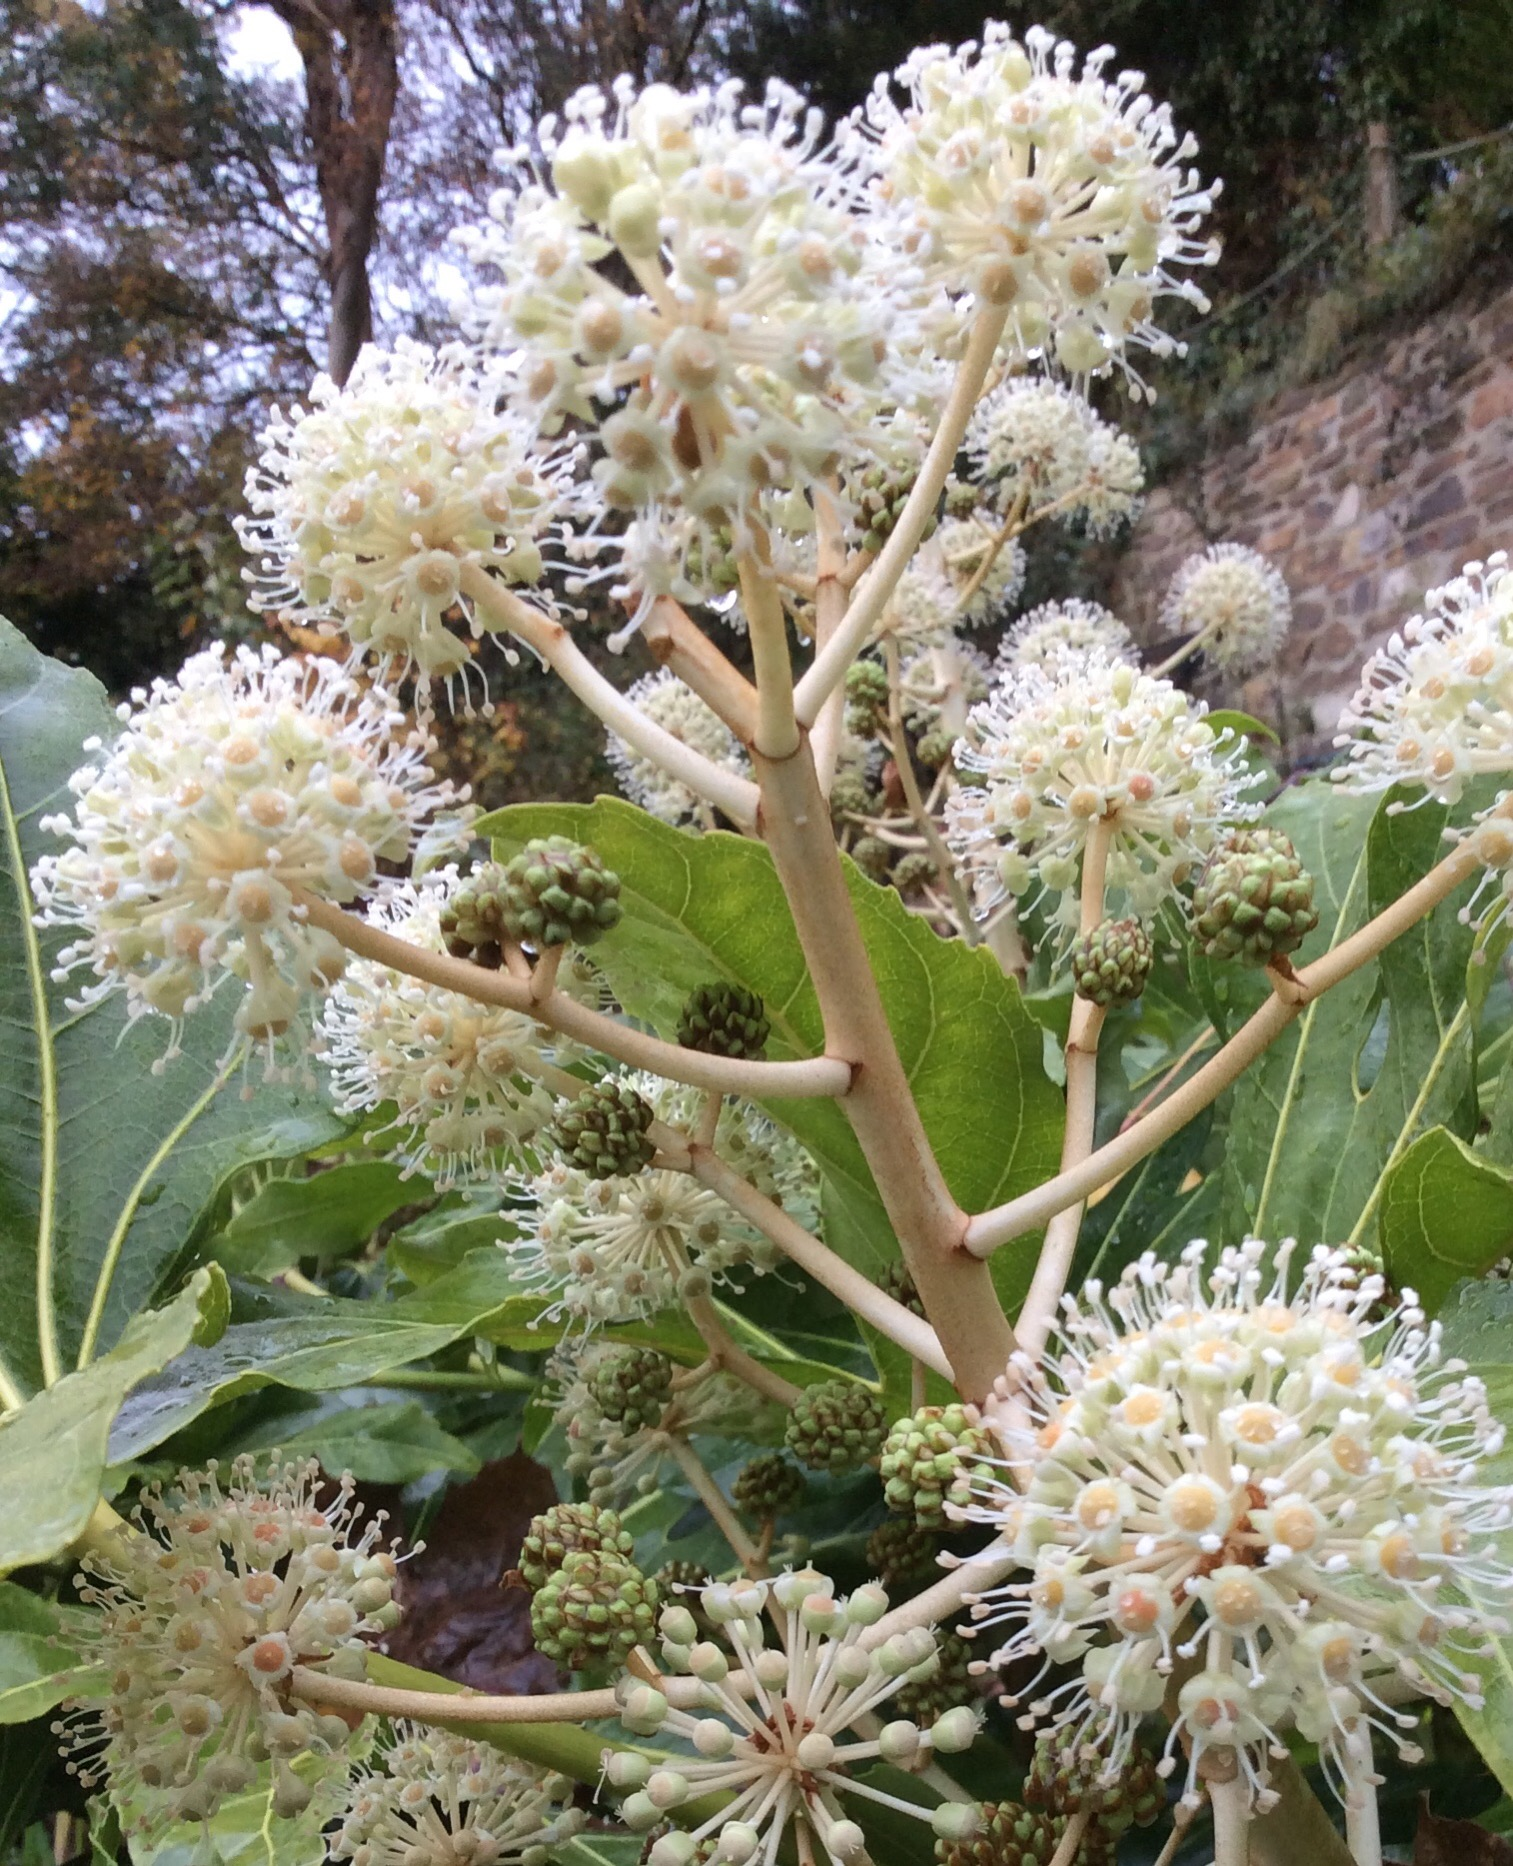 Close up of the tiny white flowers and berries on a fatsia japonica